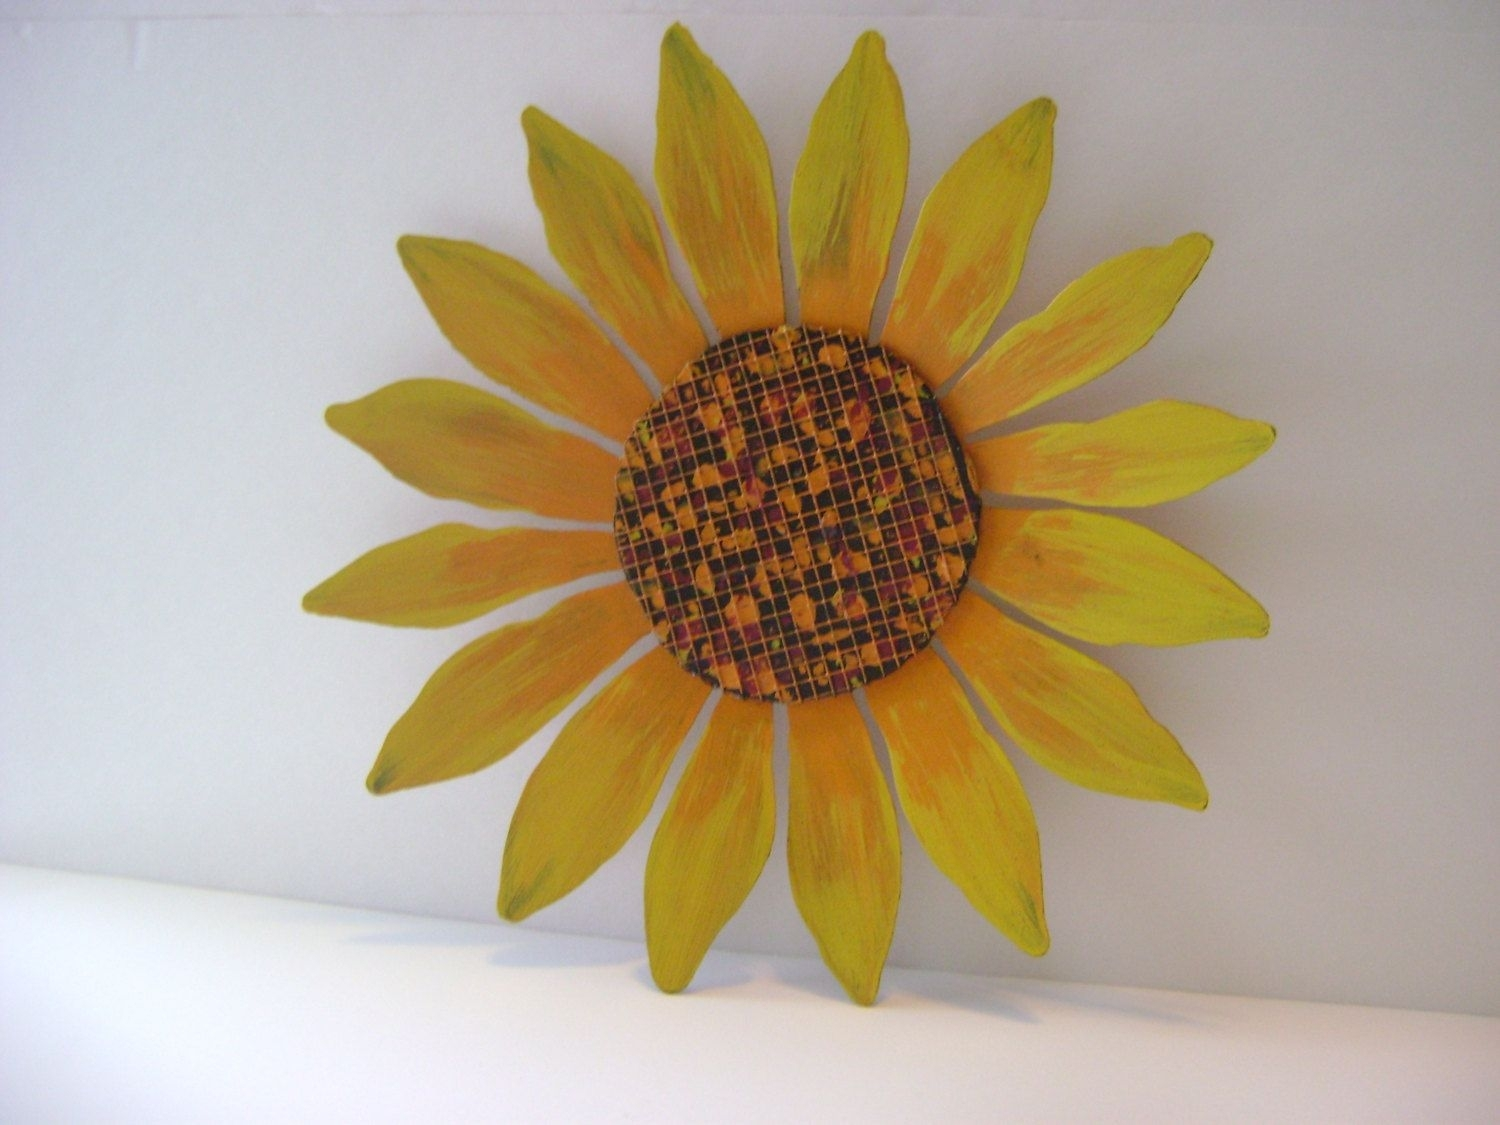 Yellow / Orange Sunflower Wall Art, Sculptured Metal Garden Art Intended For Most Up To Date Sunflower Wall Art (Gallery 6 of 20)